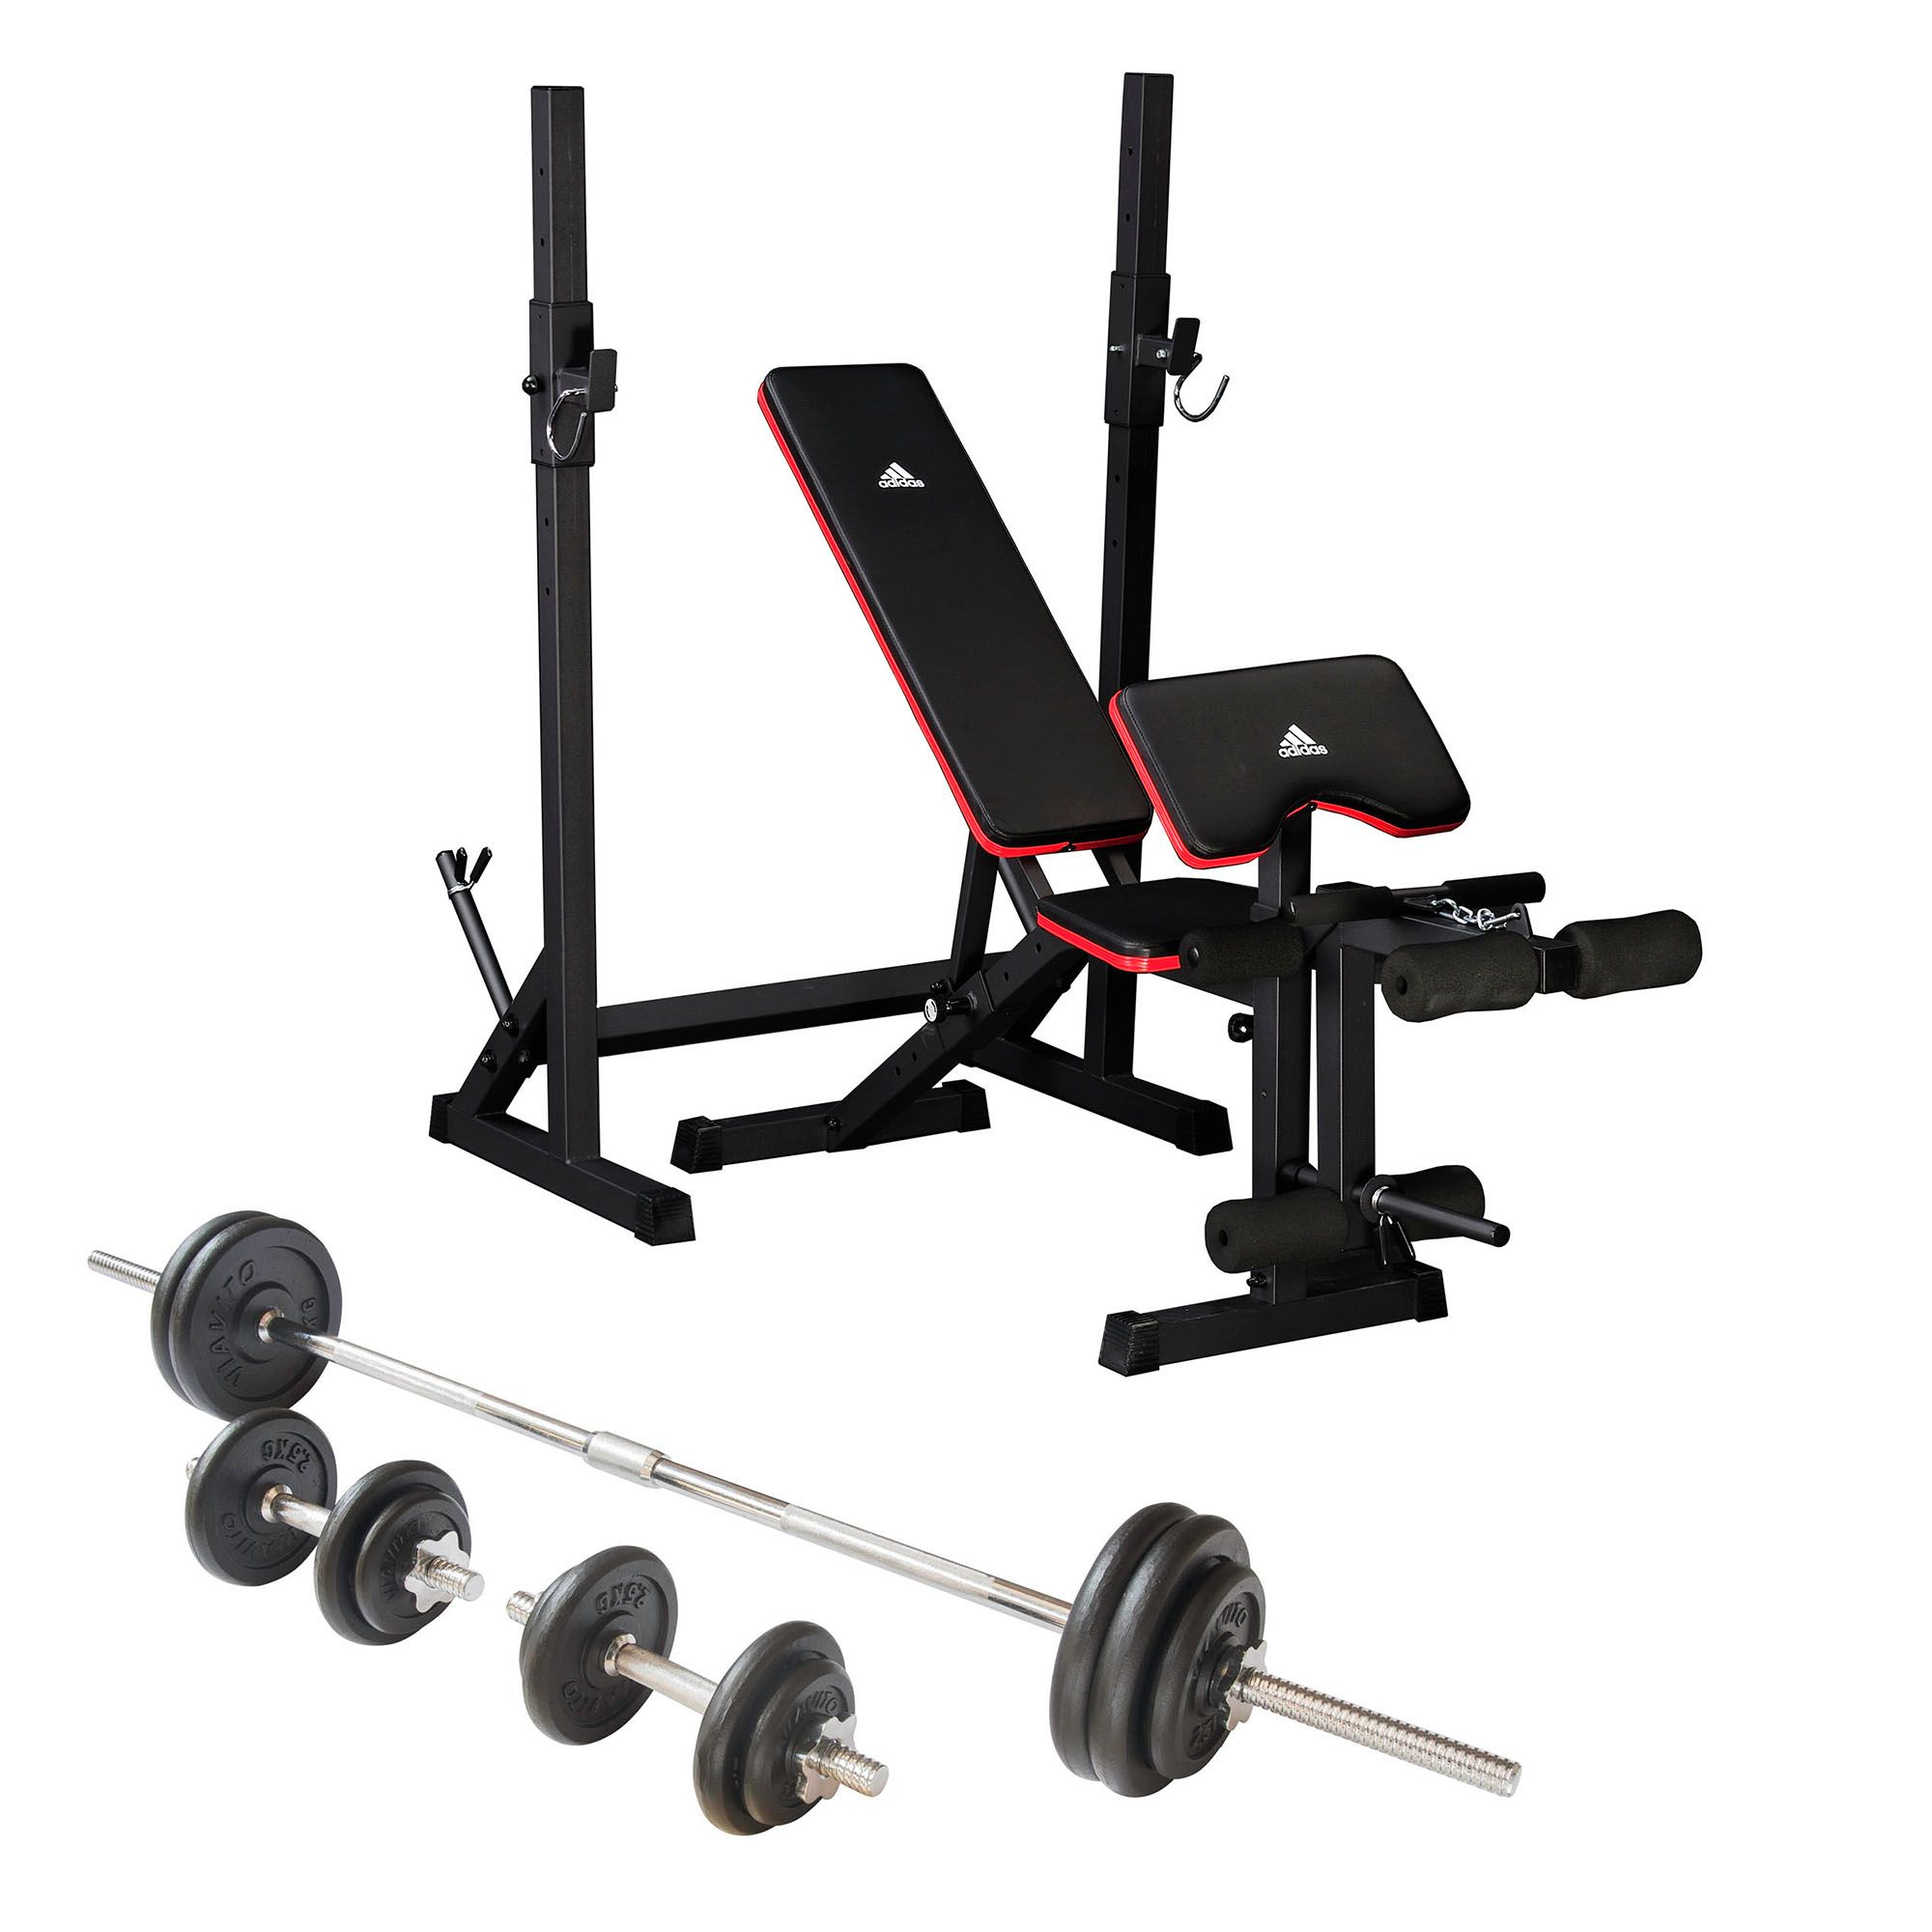 Adidas essential weight bench and viavito 50kg cast iron weight set Weight bench and weights